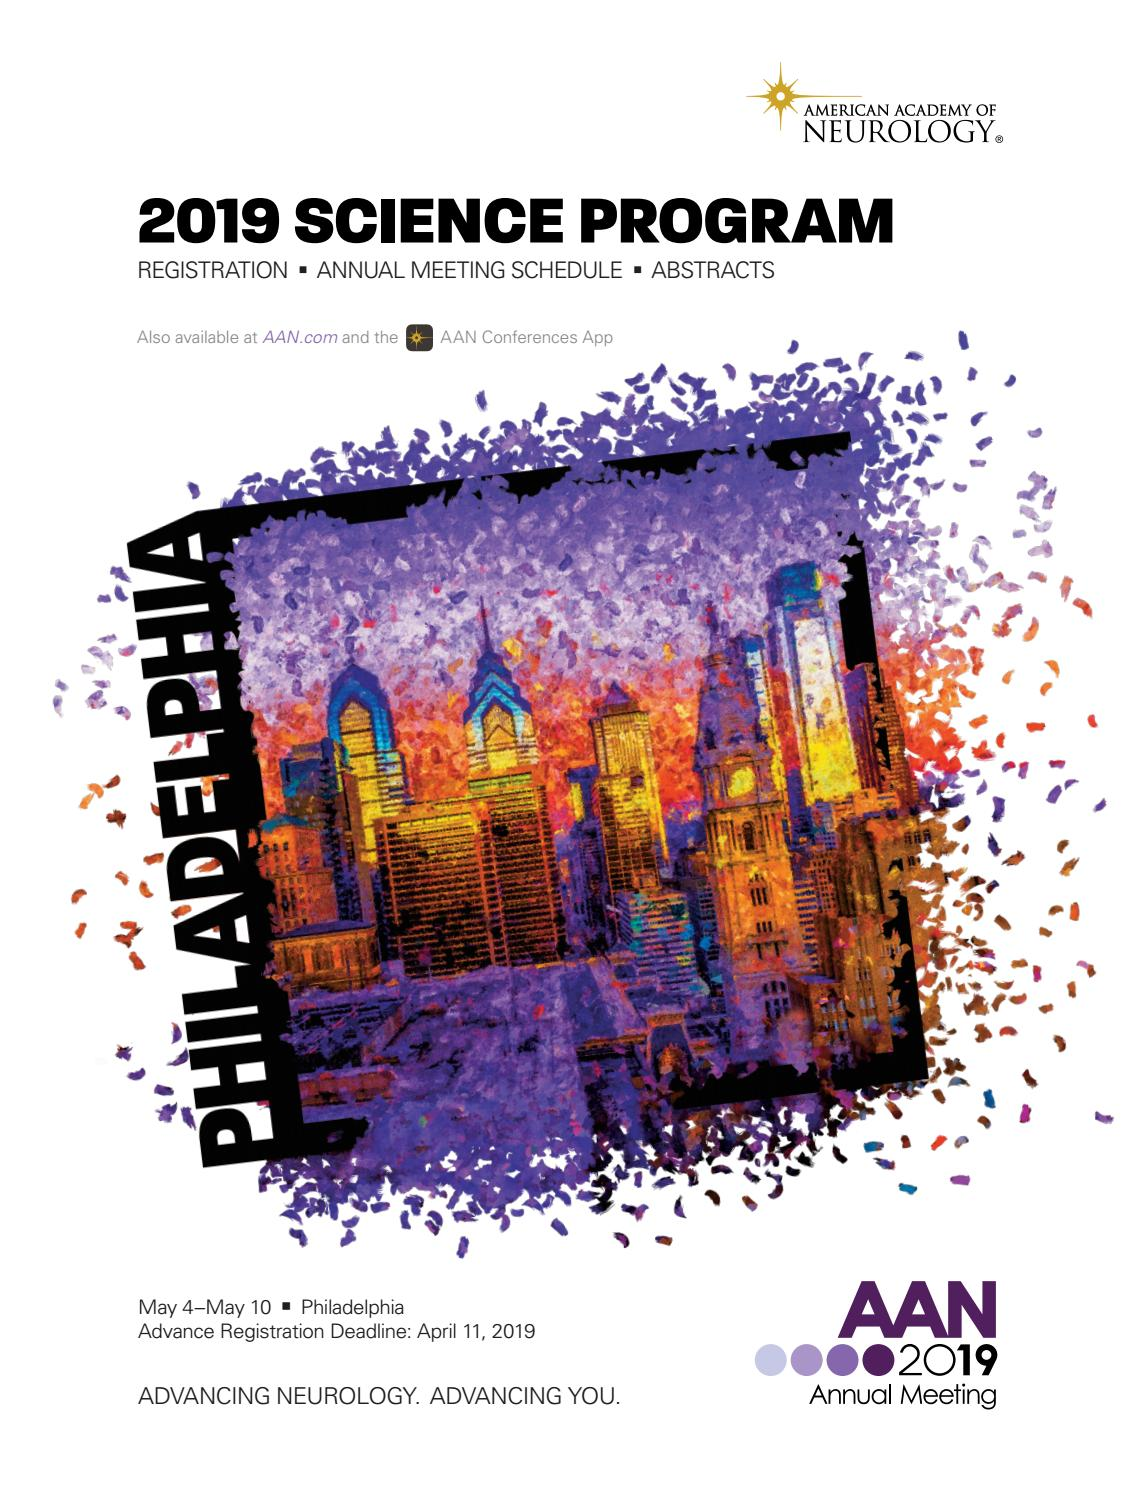 2019 Science Program by American Academy of Neurology - issuu